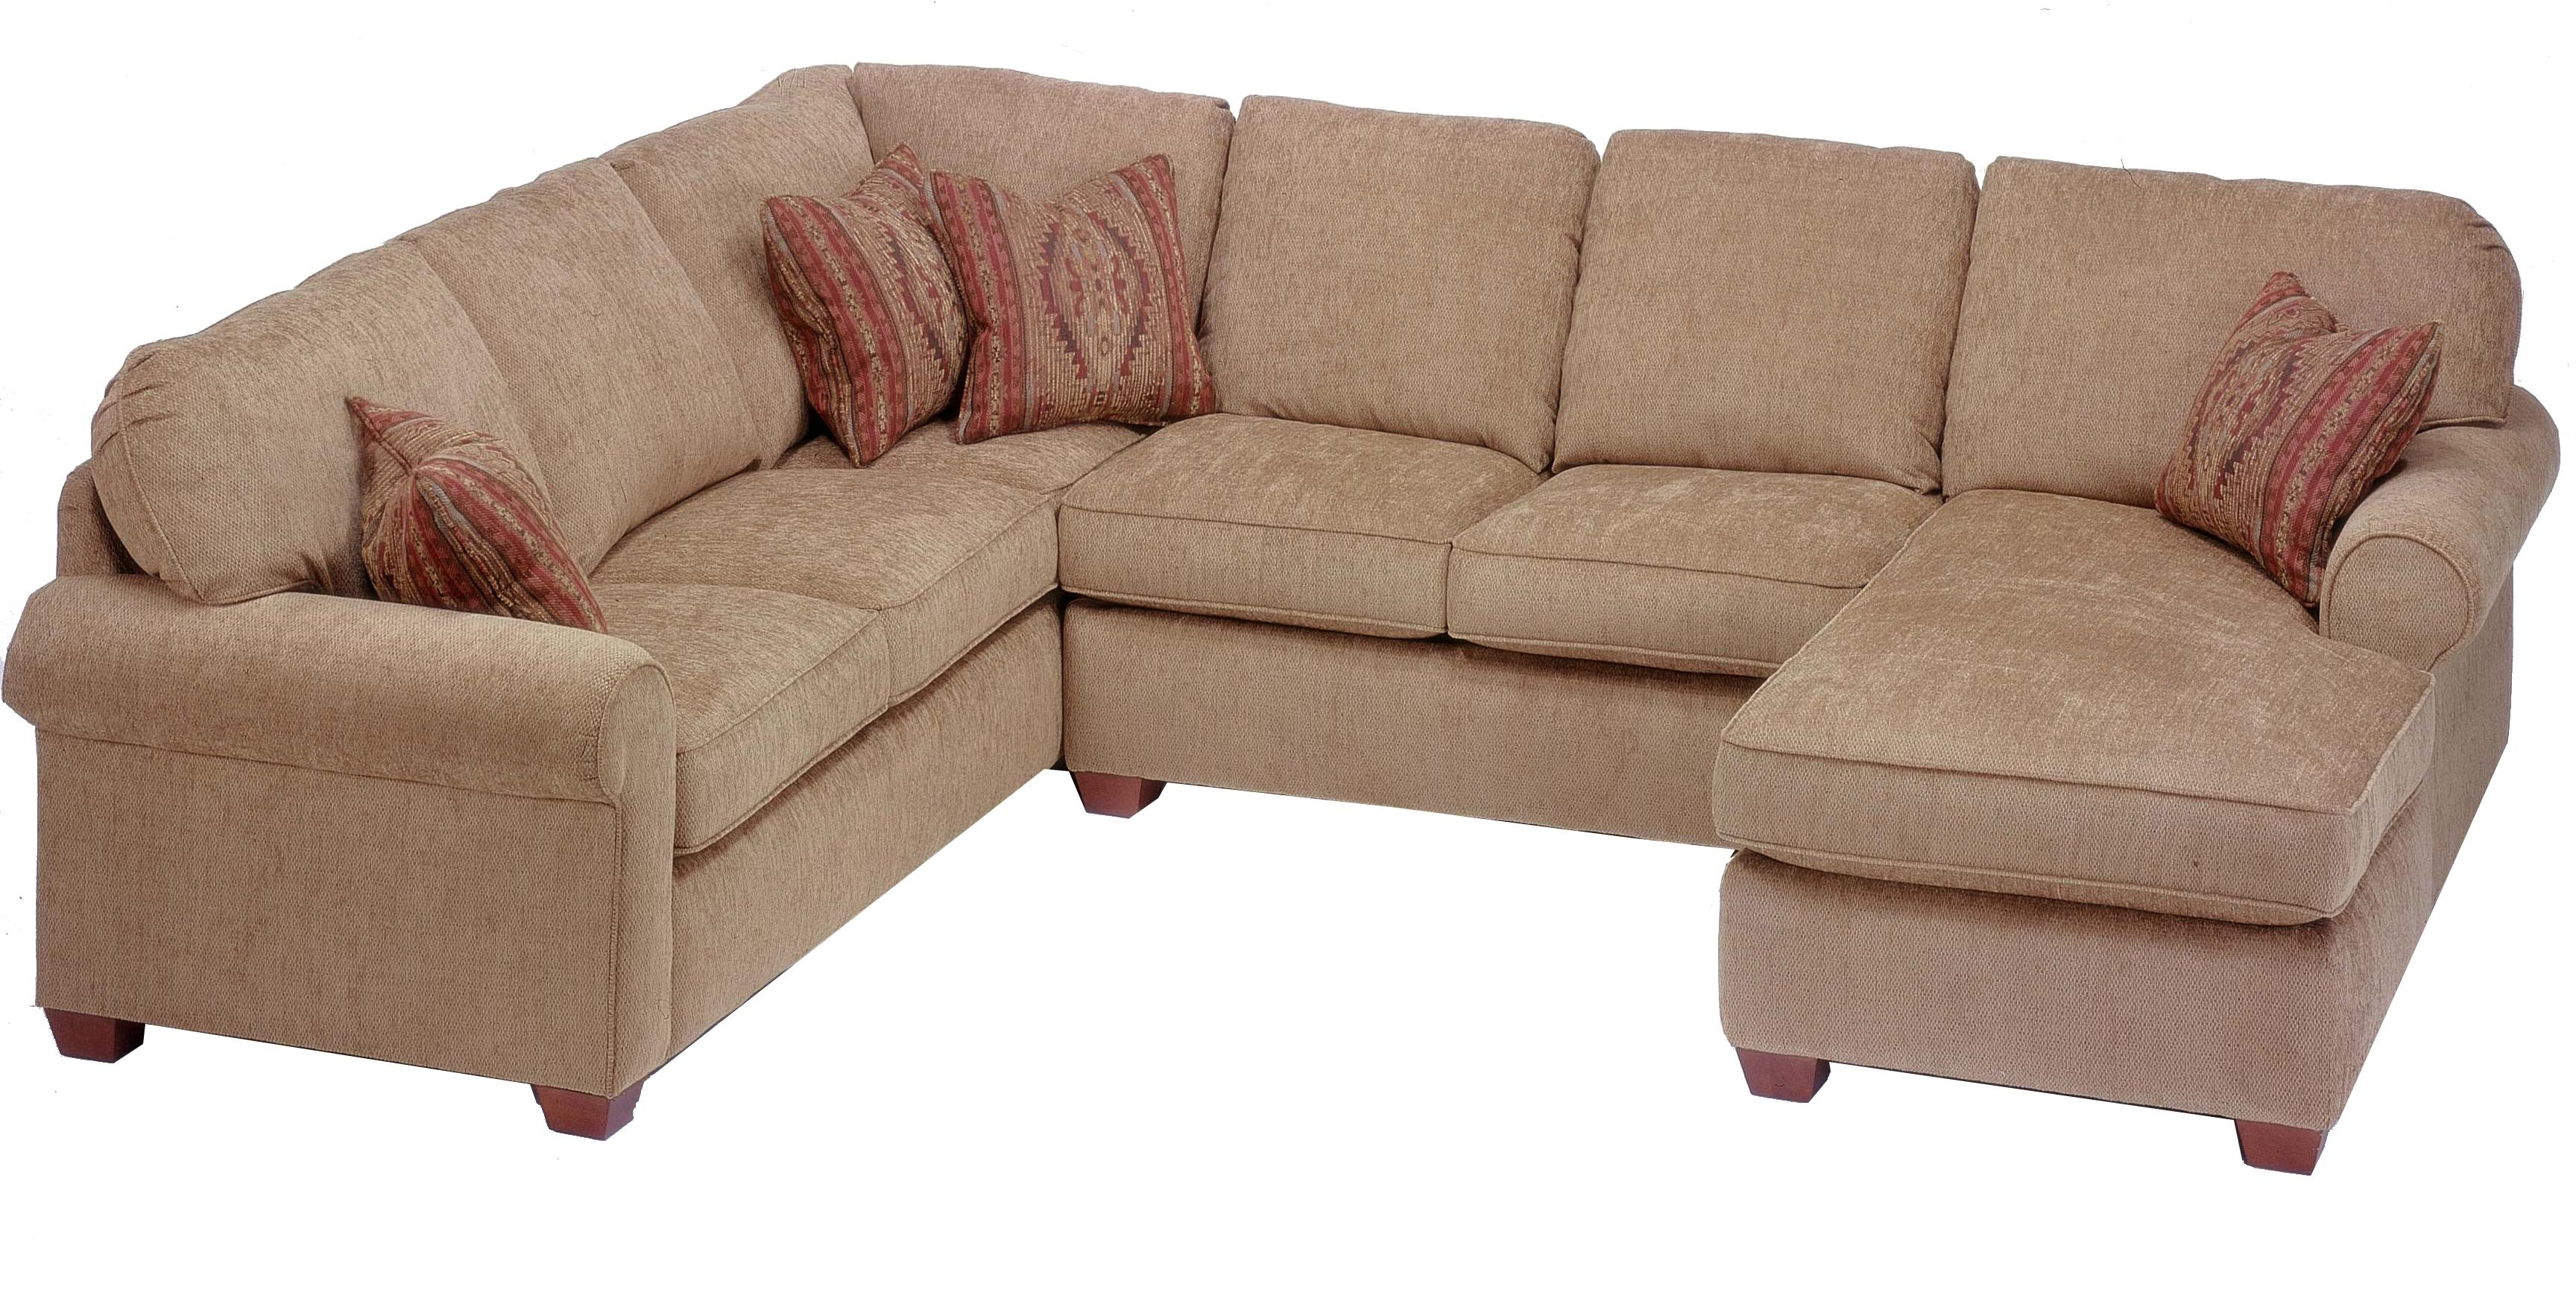 Flexsteel Thornton 3 Piece Sectional With Chaise – Ahfa – Sofa In Most Recent Jackson Tn Sectional Sofas (View 4 of 15)